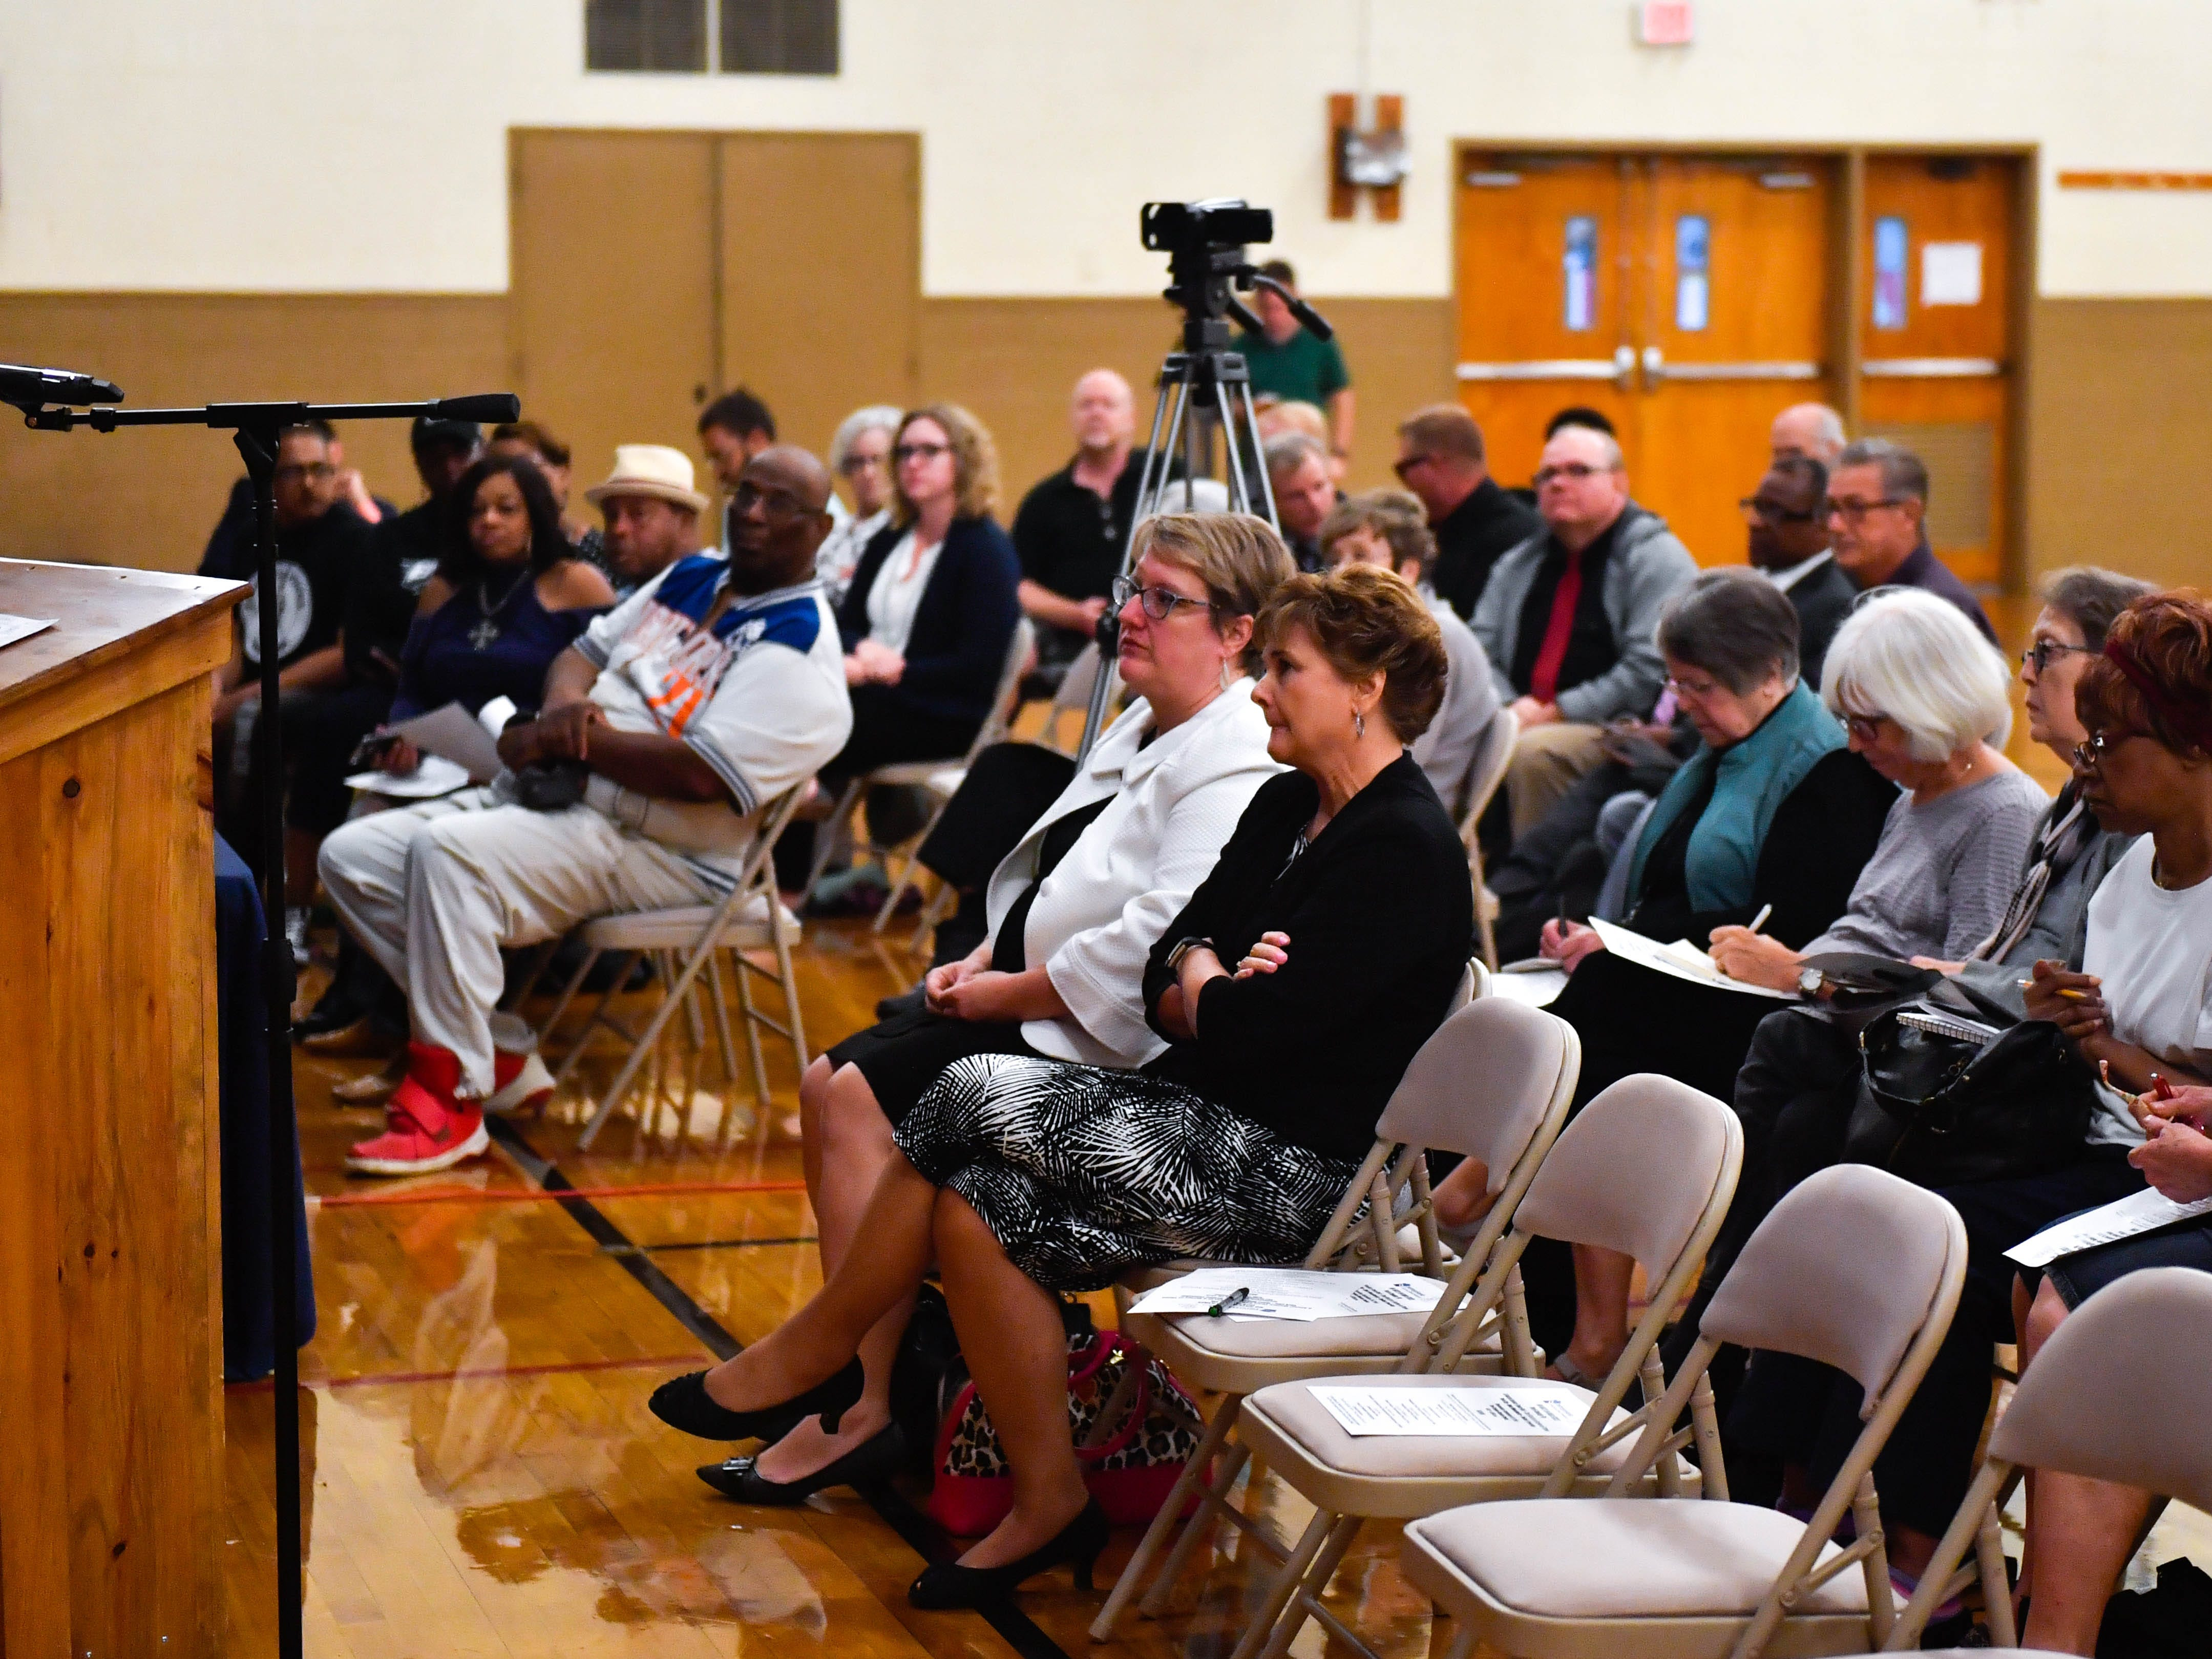 """People of all races and walks of life attended the """"No Hate in Our State"""" Social Justice Town Hall meeting at the Crispus Attucks Community Center, Wednesday, September 26, 2018."""